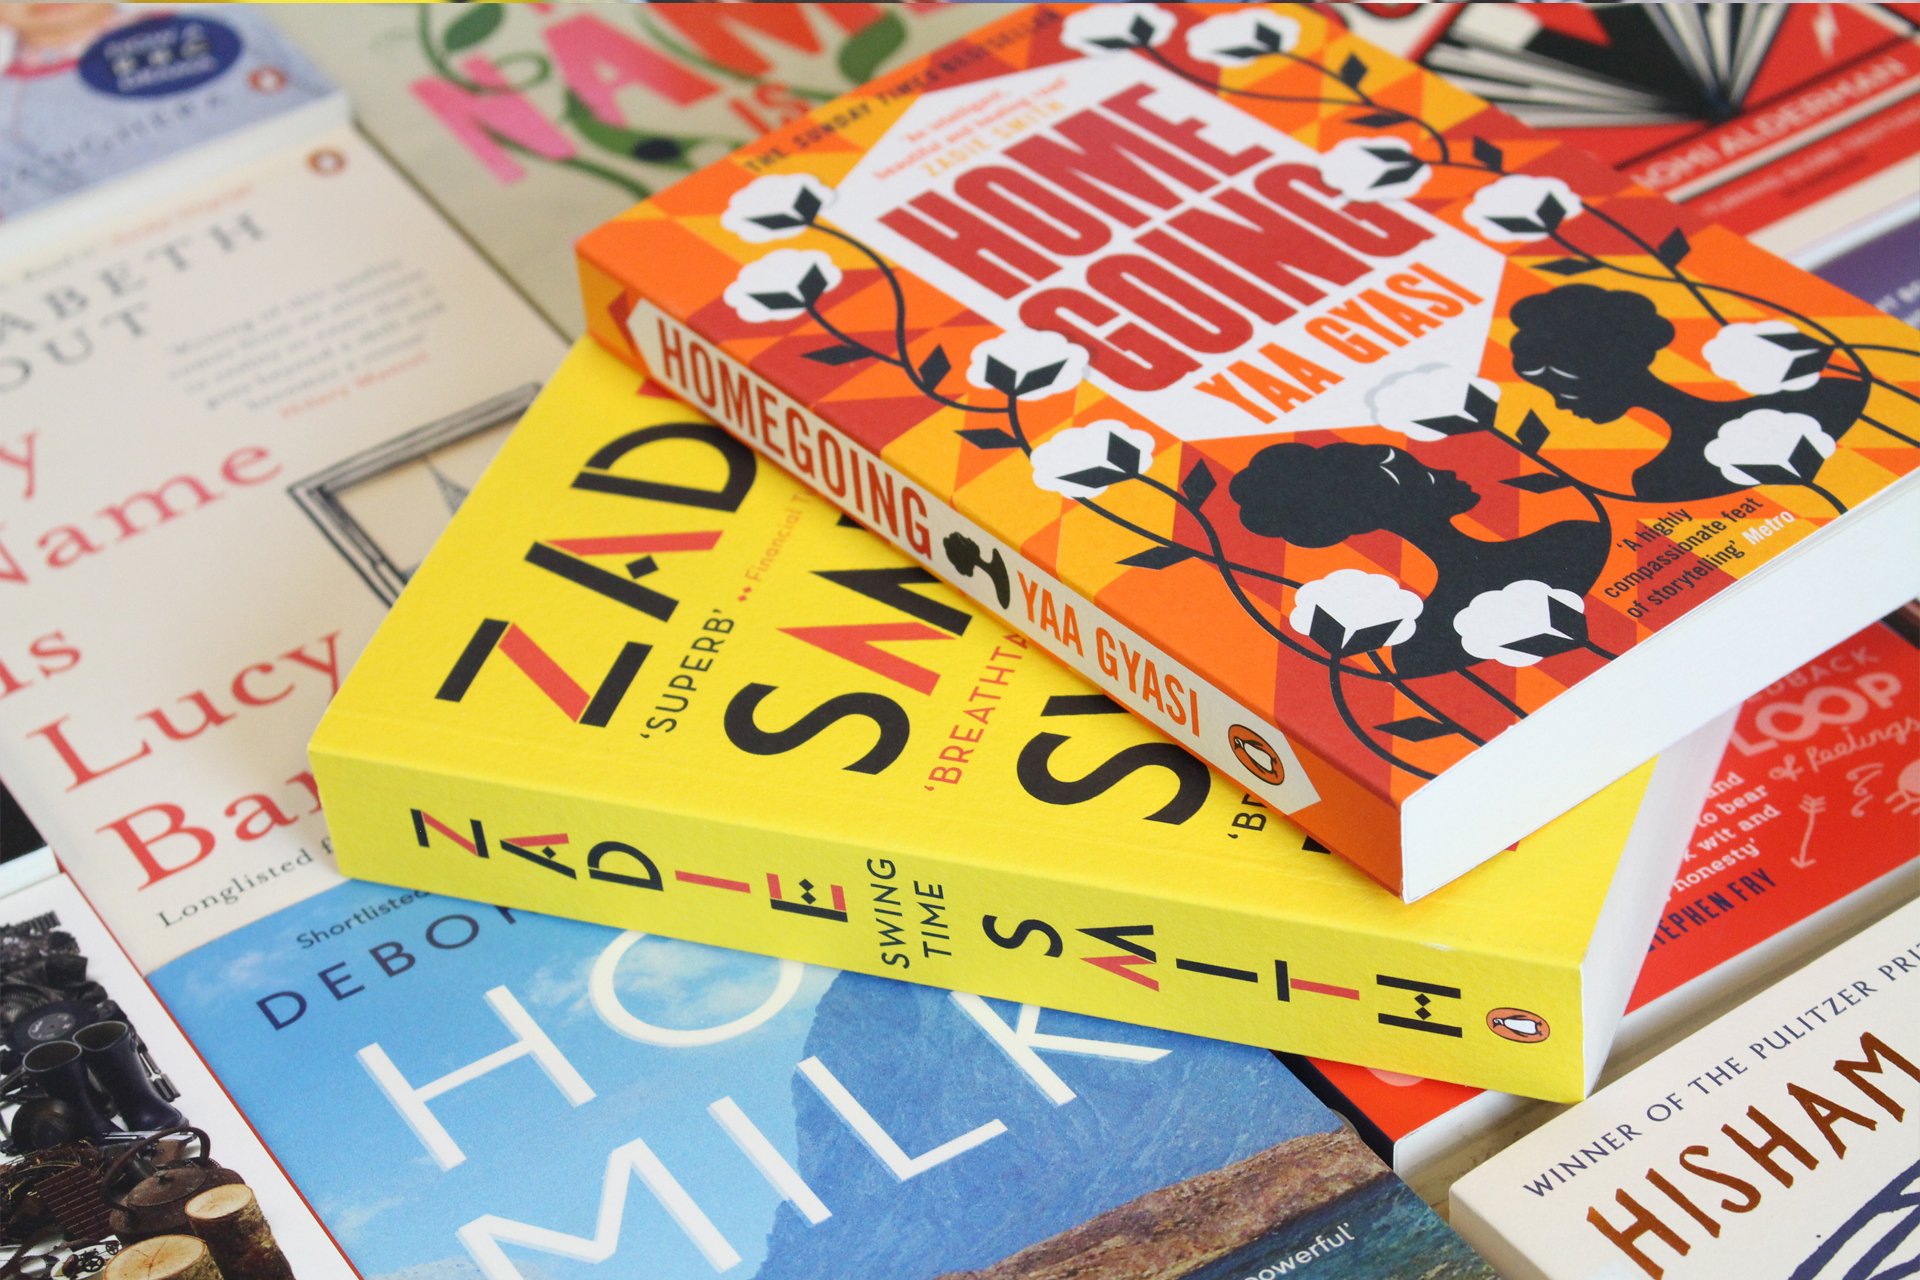 For every £75 / €90 of National Book Tokens you buy, claim a free book from our wonderful selection.